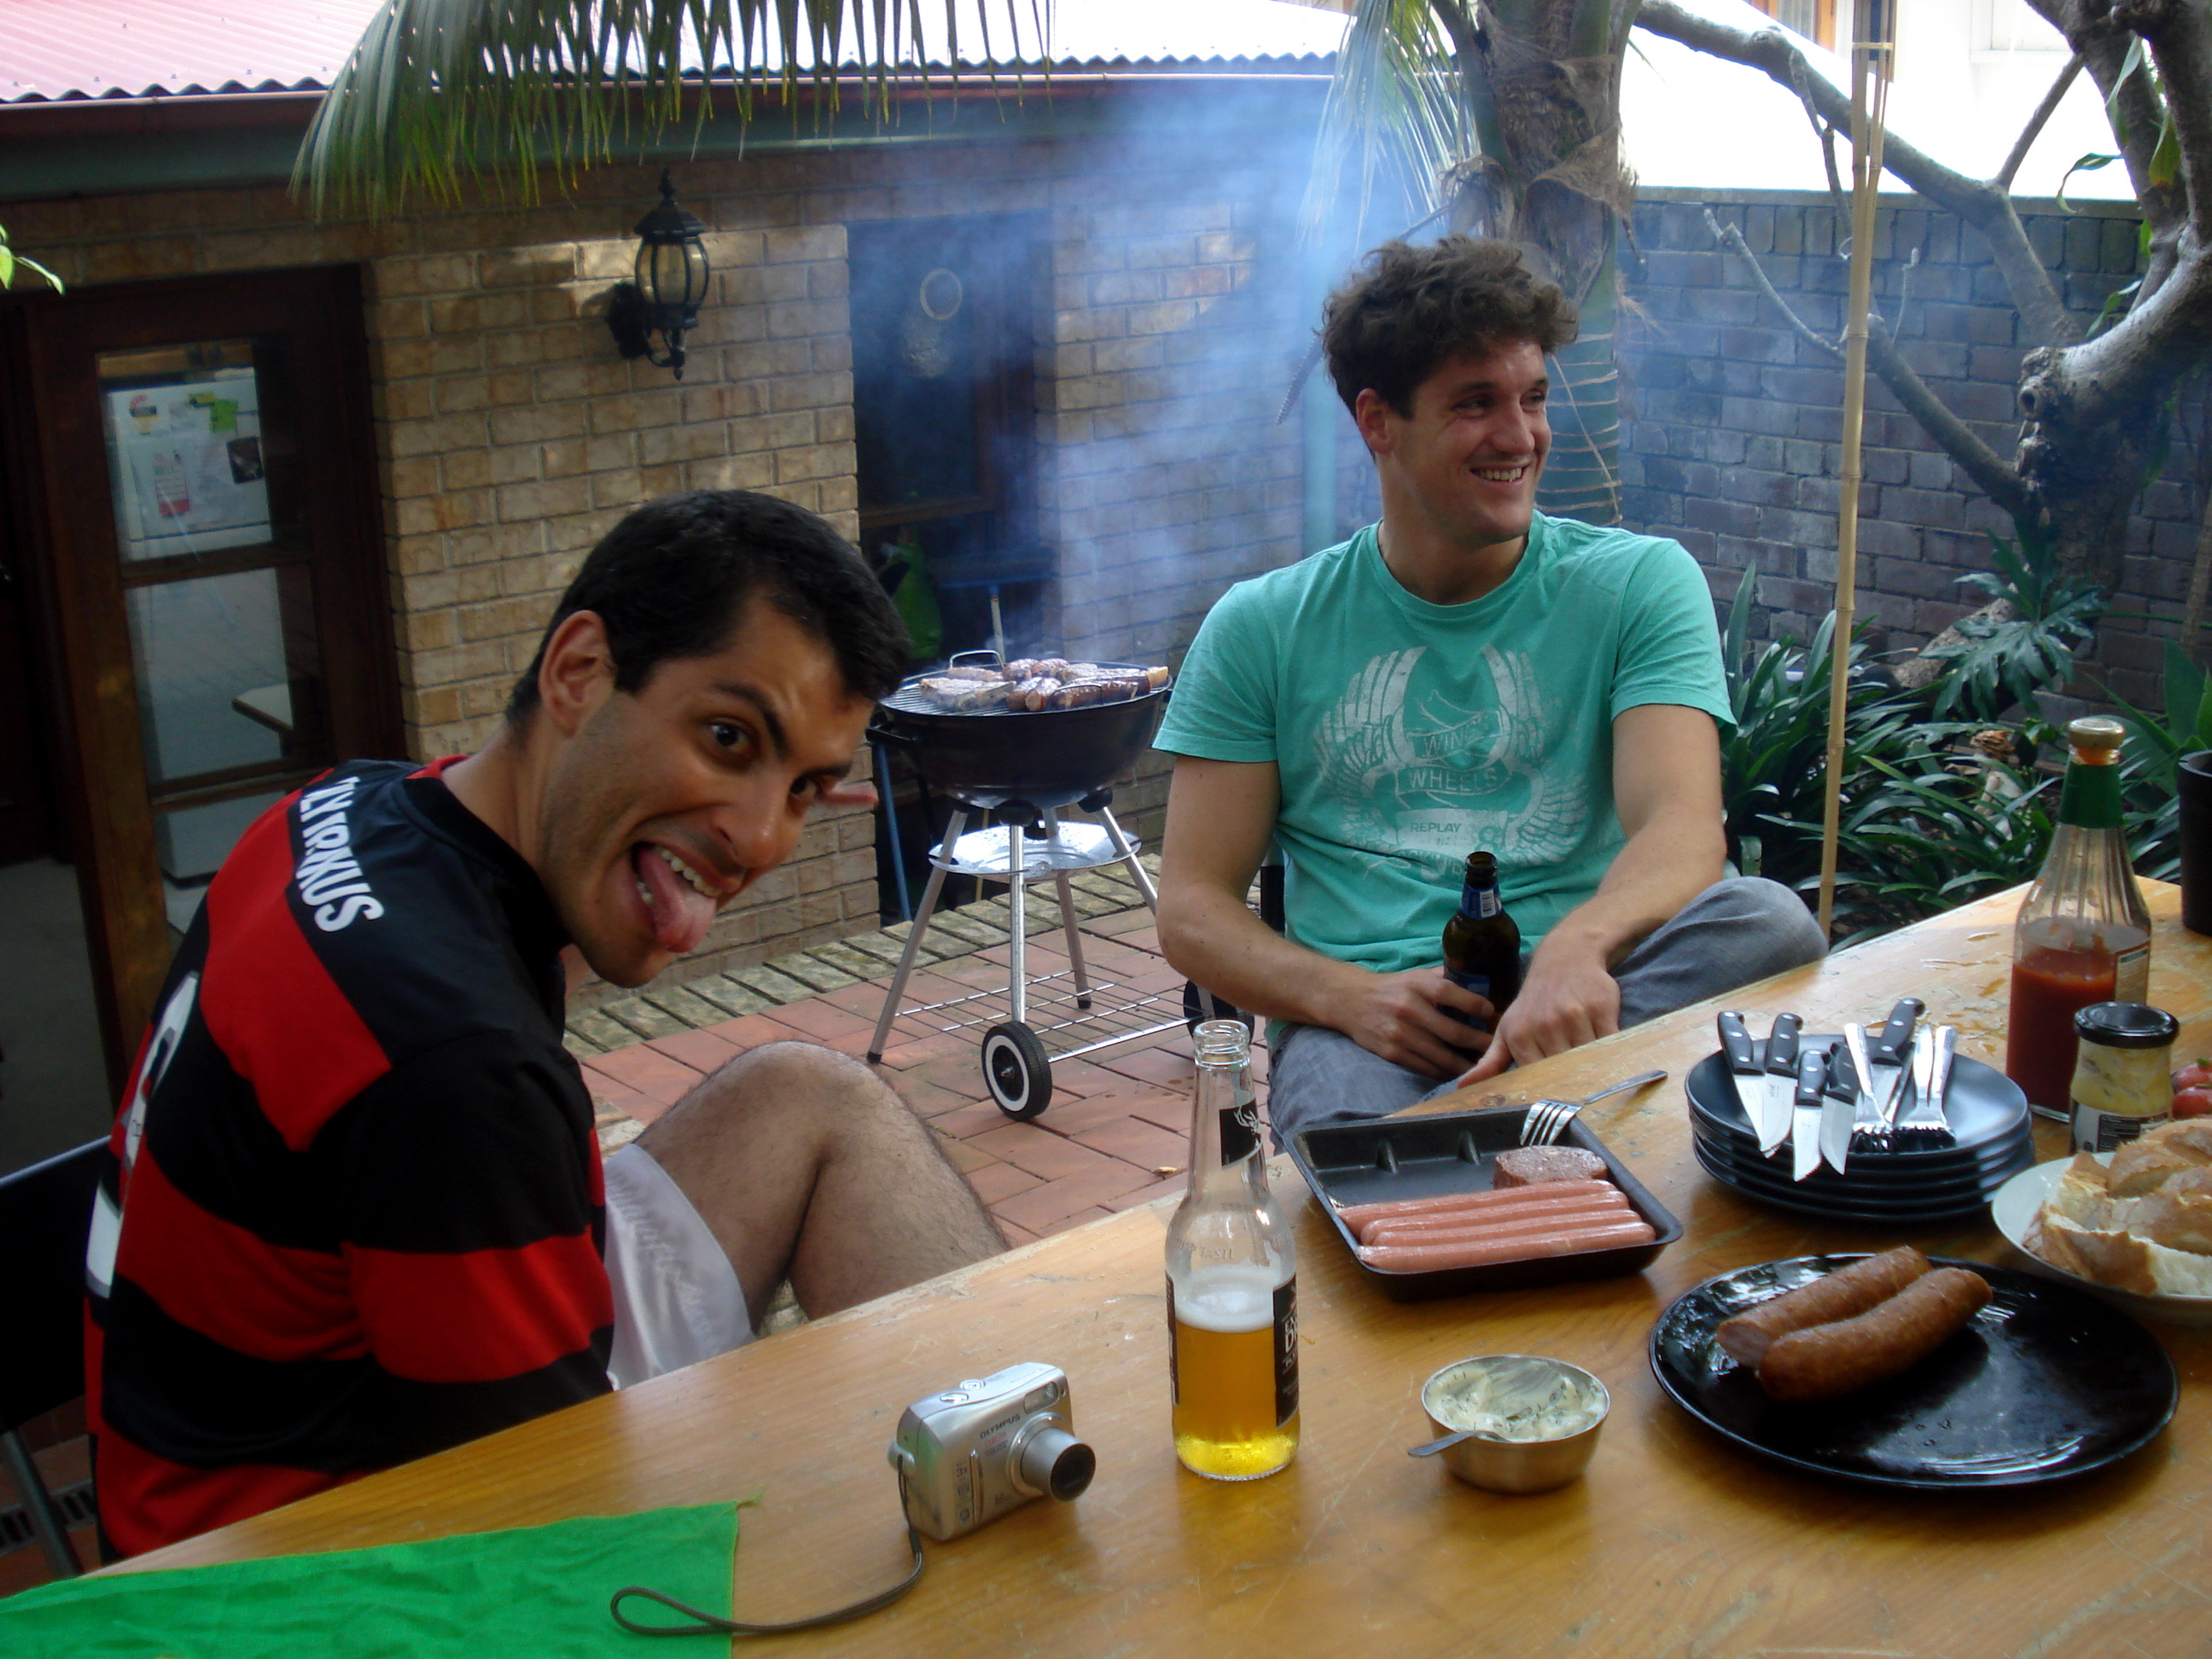 Barbecue in Sydney